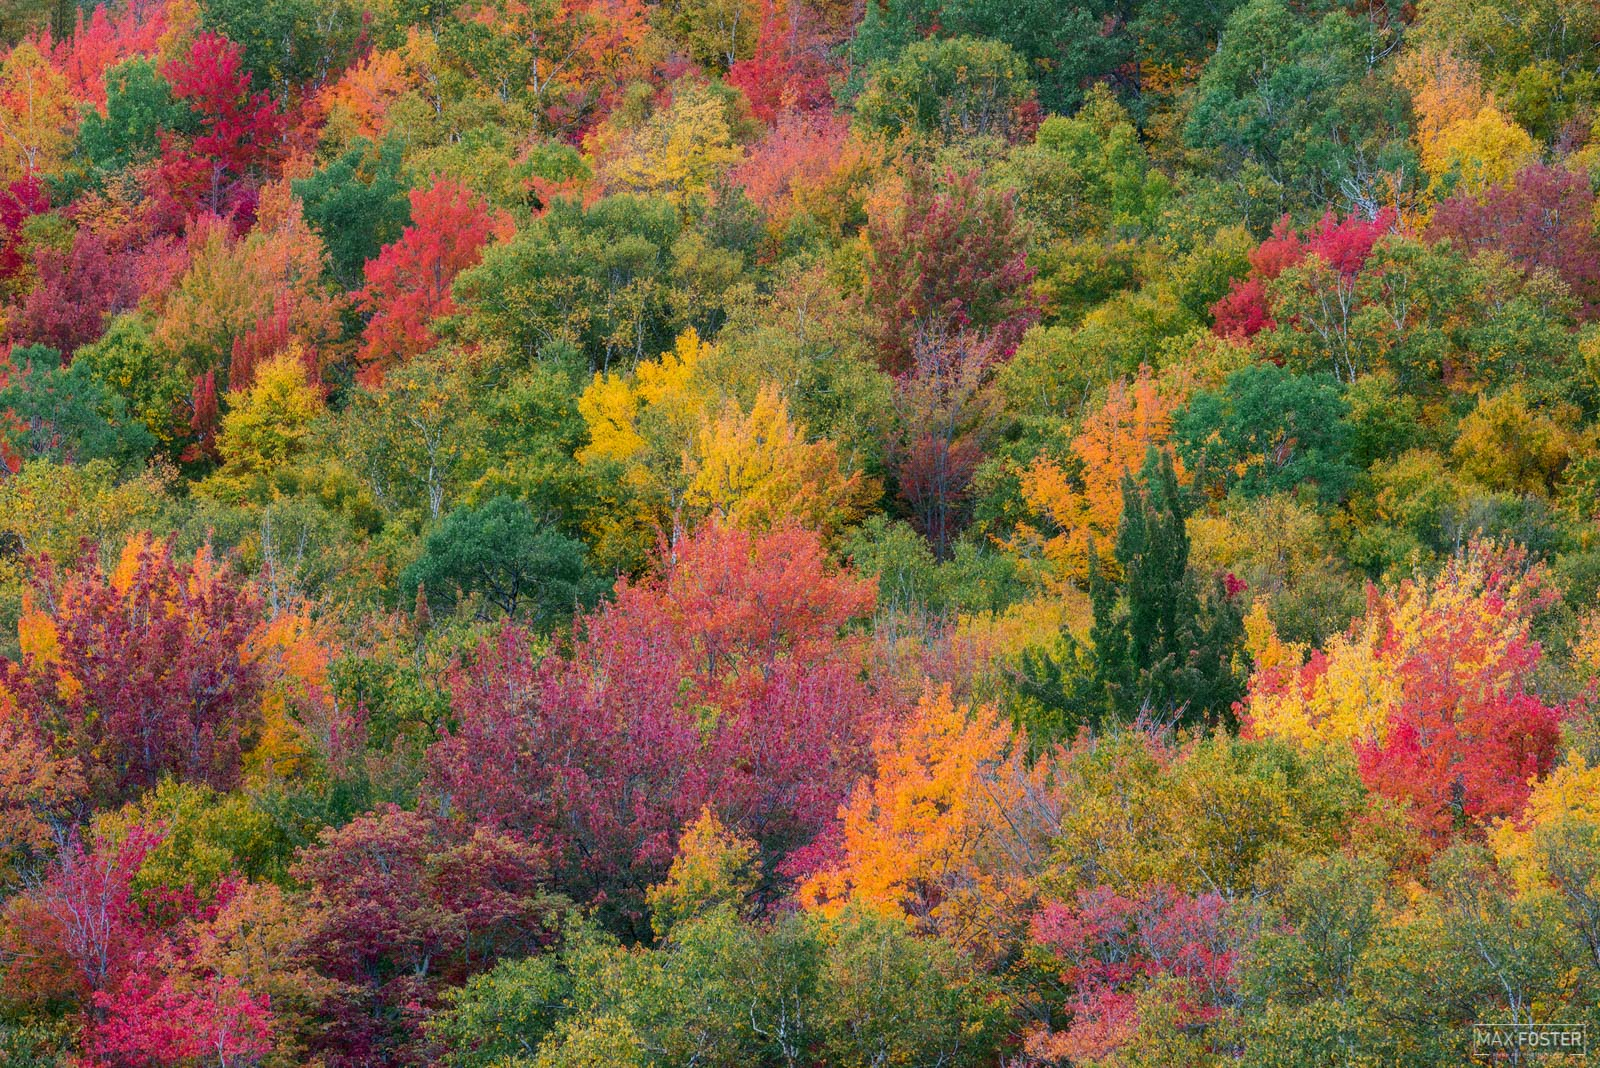 Vermont, Leaf Peeping, Fall Foliage, Autumn, New England, Artist's Palette, photo